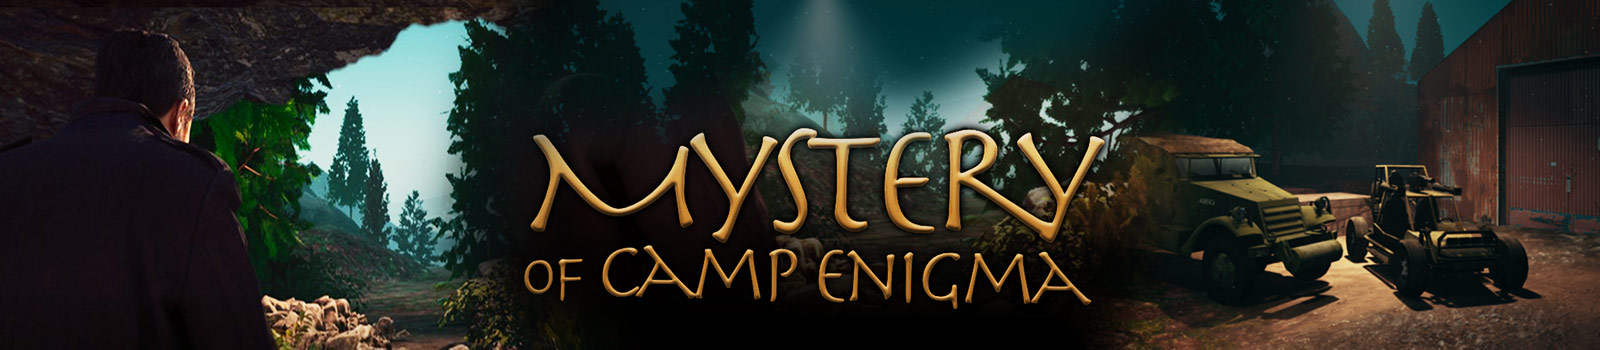 Mystery of Camp Enigma